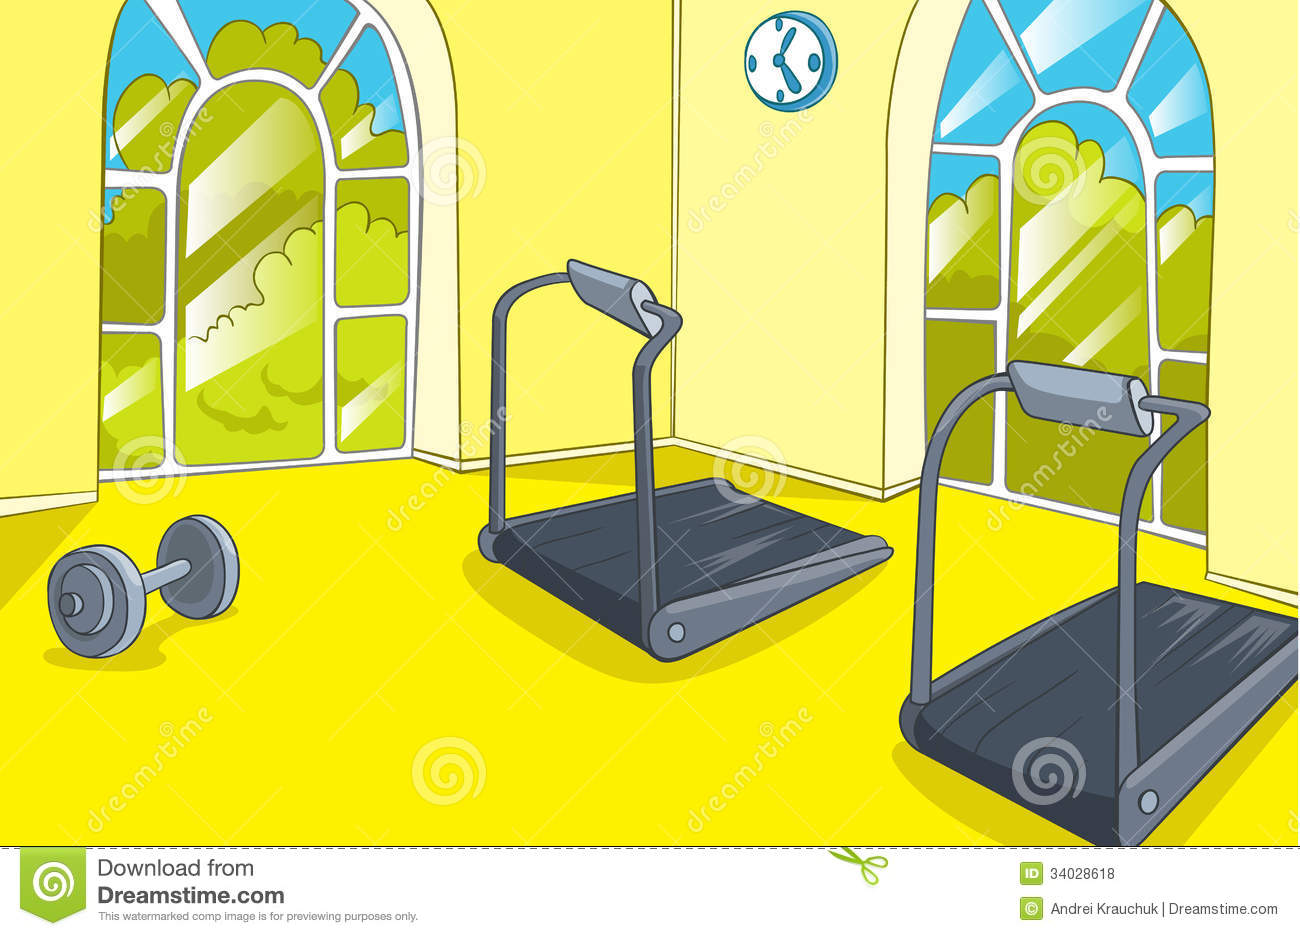 Business plan for gym room we can do your homework